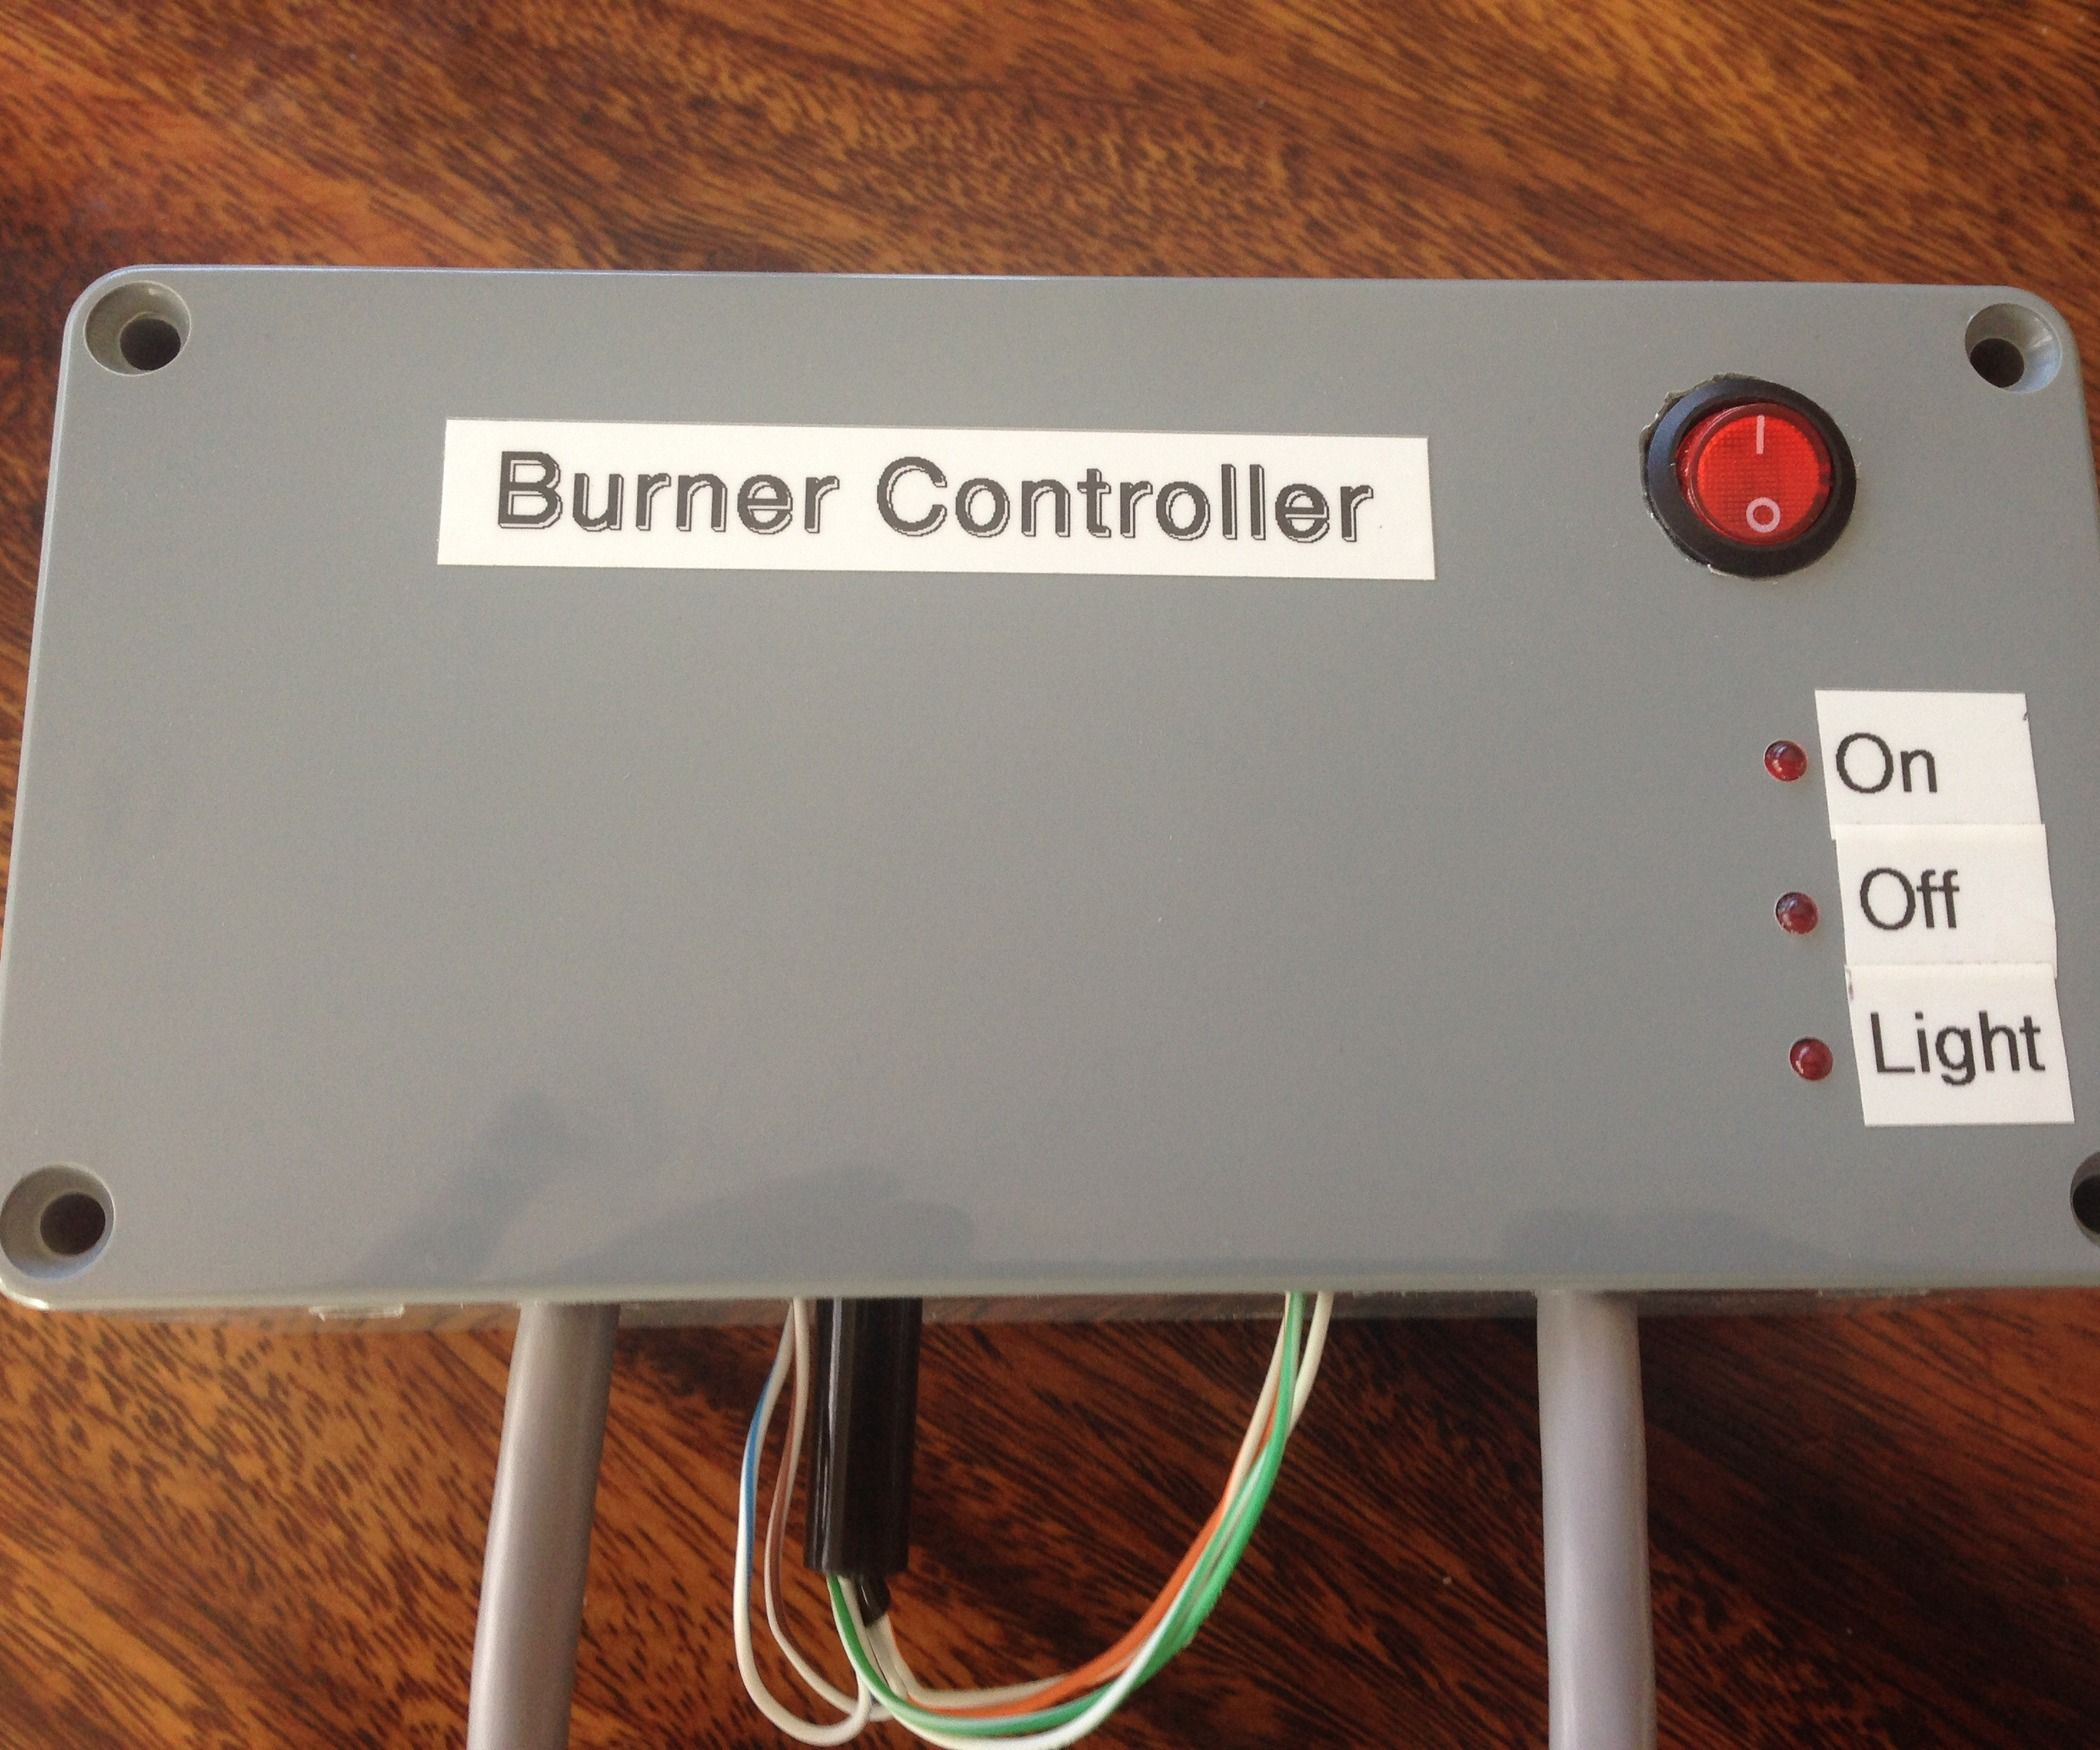 Gas Burner Controller | Step up the brew. | Pizza maker ...